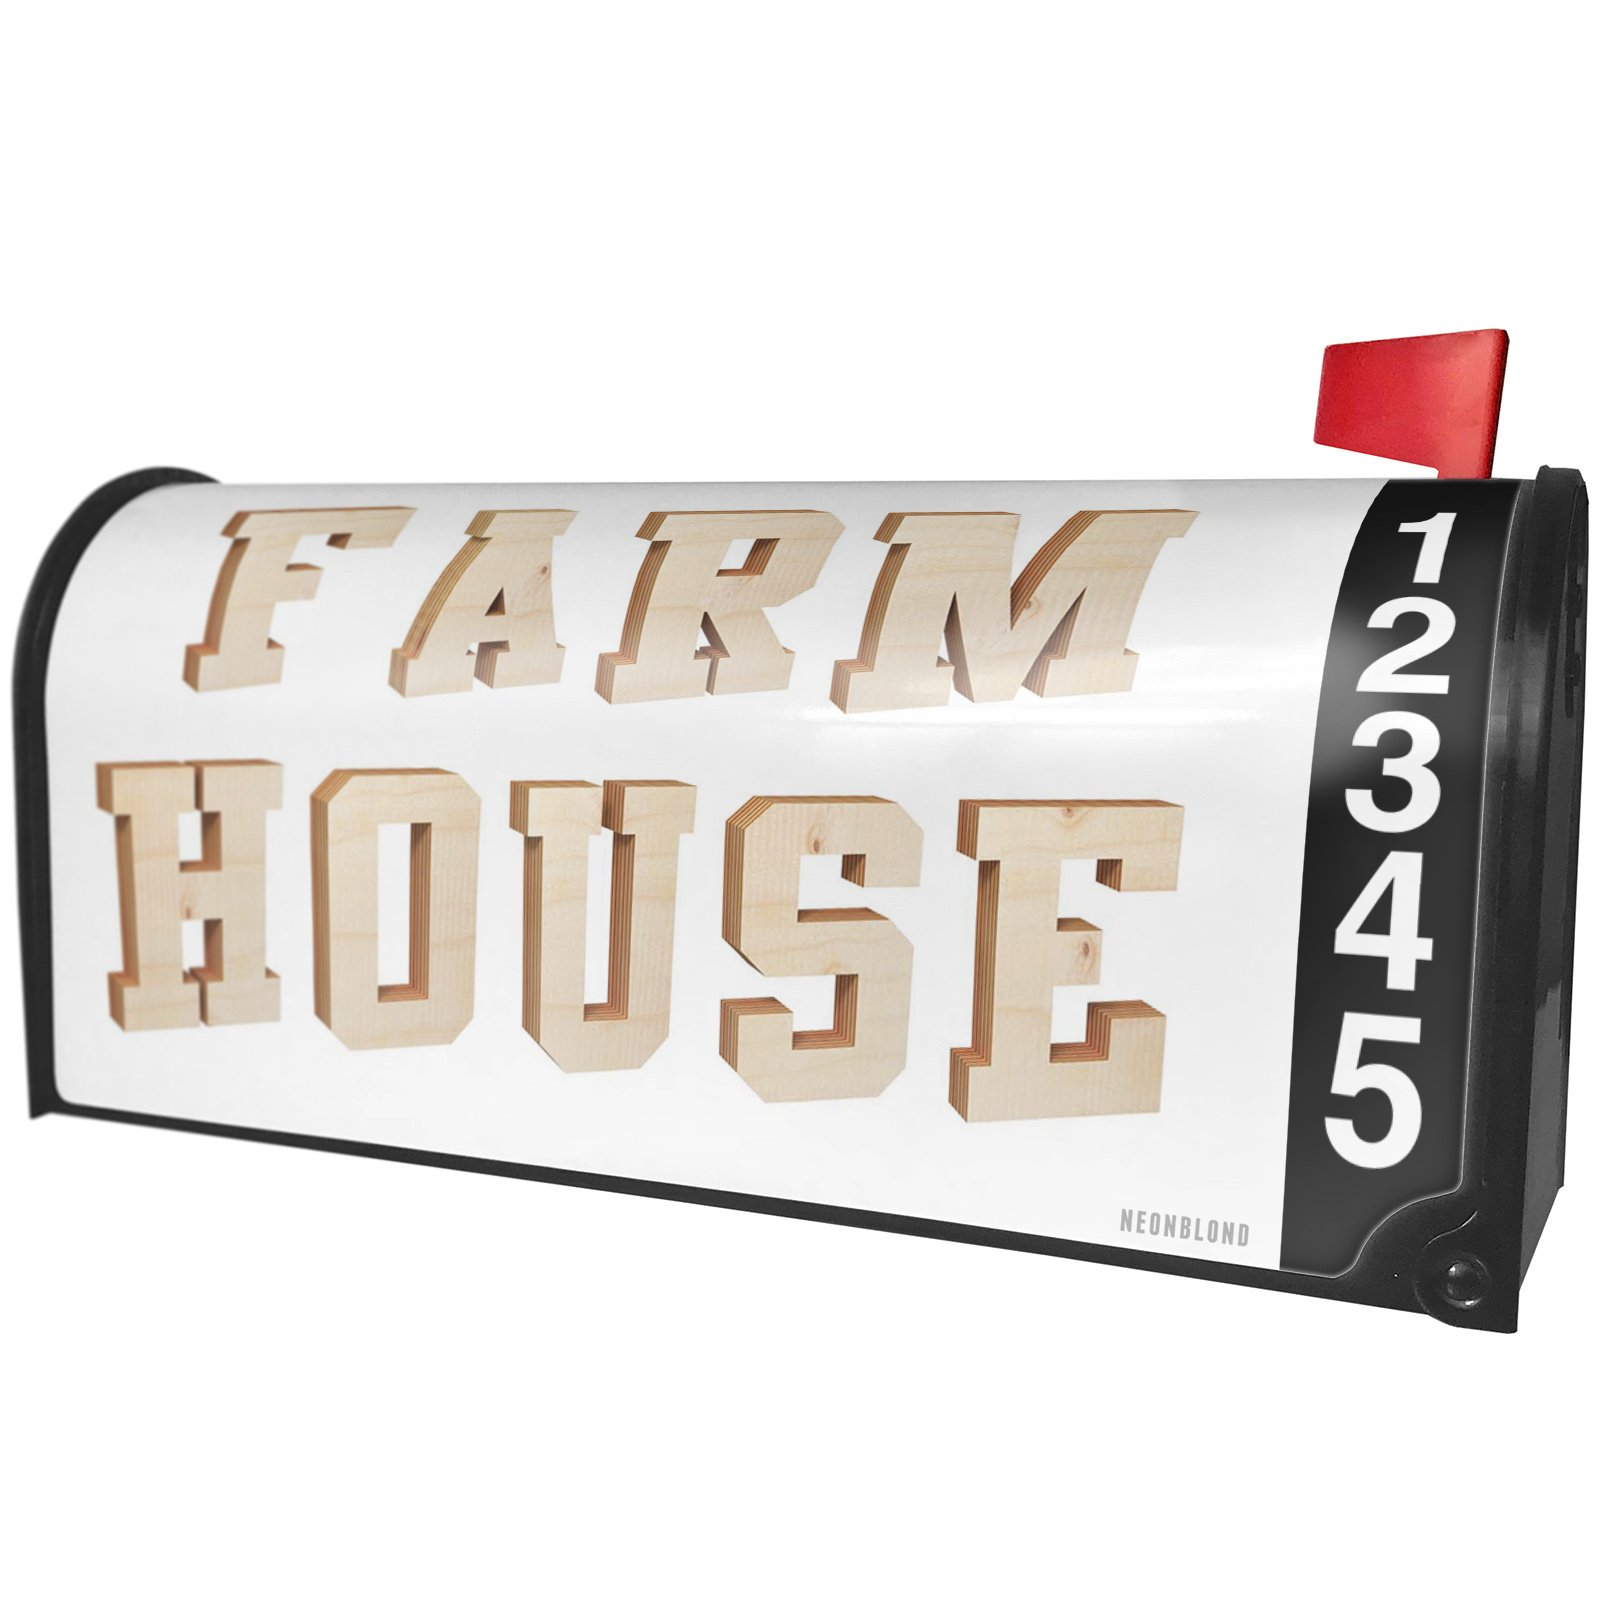 NEONBLOND Farm House Plywood Wood Lettering Magnetic Mailbox Cover Custom Numbers